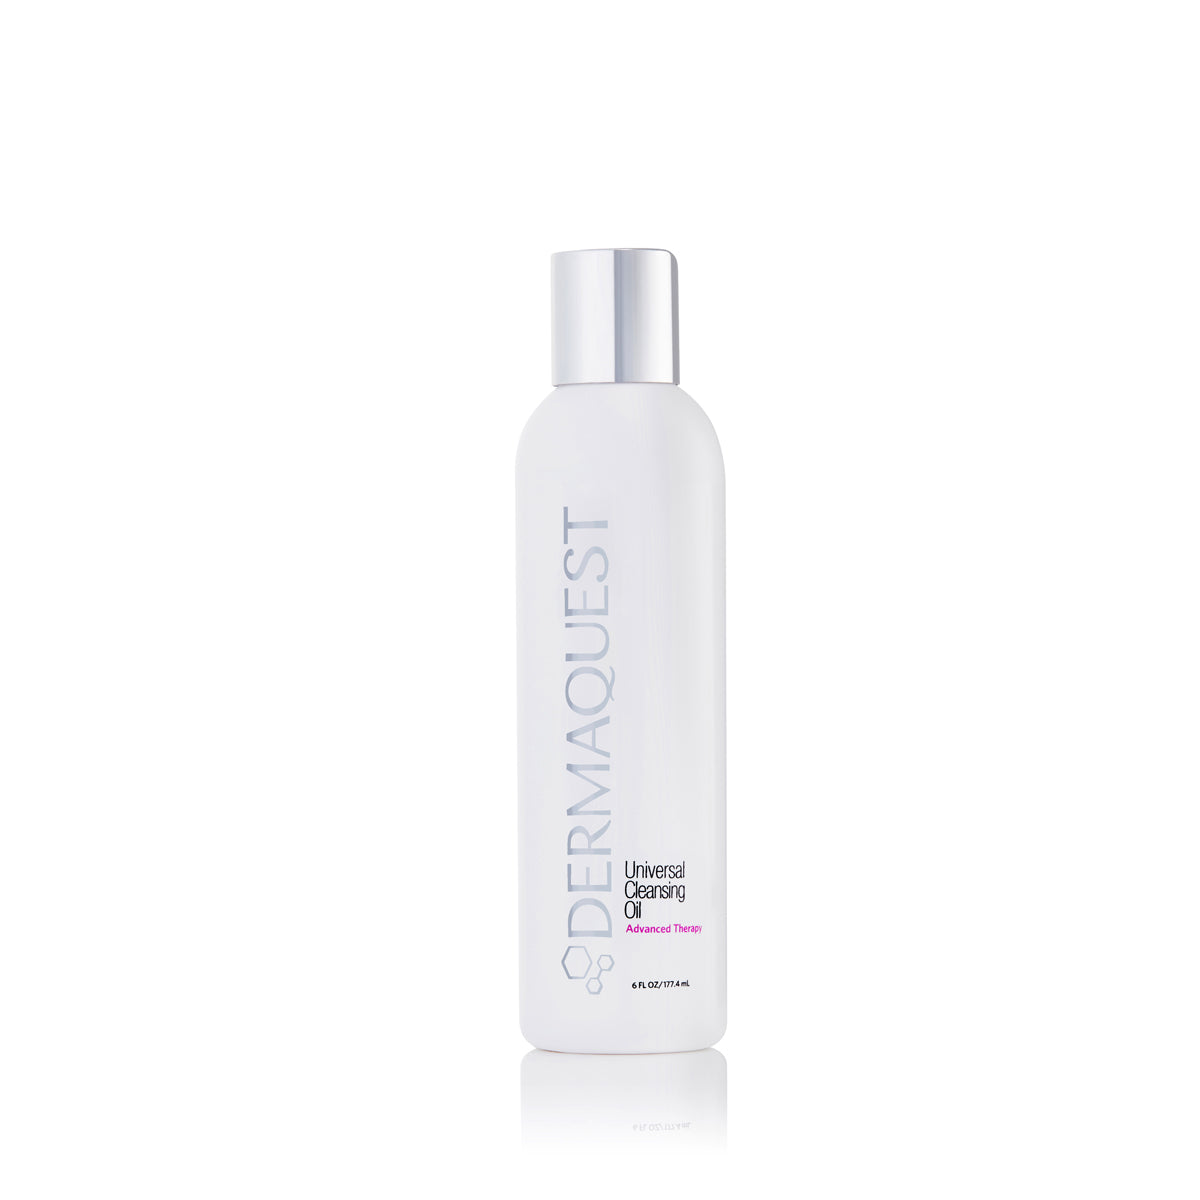 Dermaquest Advanced Universal Cleansing Oil